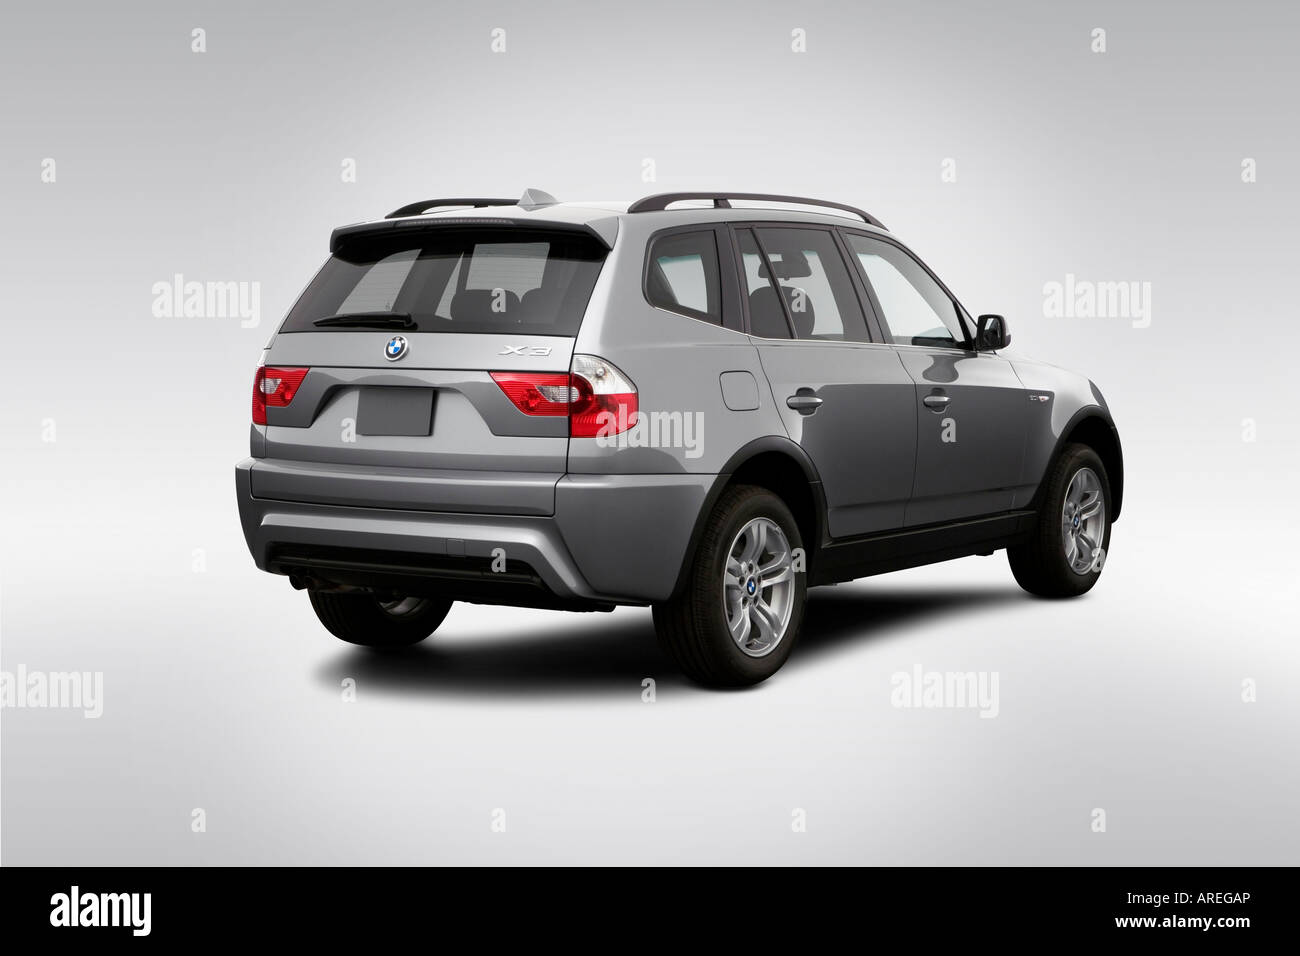 2006 BMW X3 3.0i in Silver - Rear angle view Stock Photo: 16030461 ...